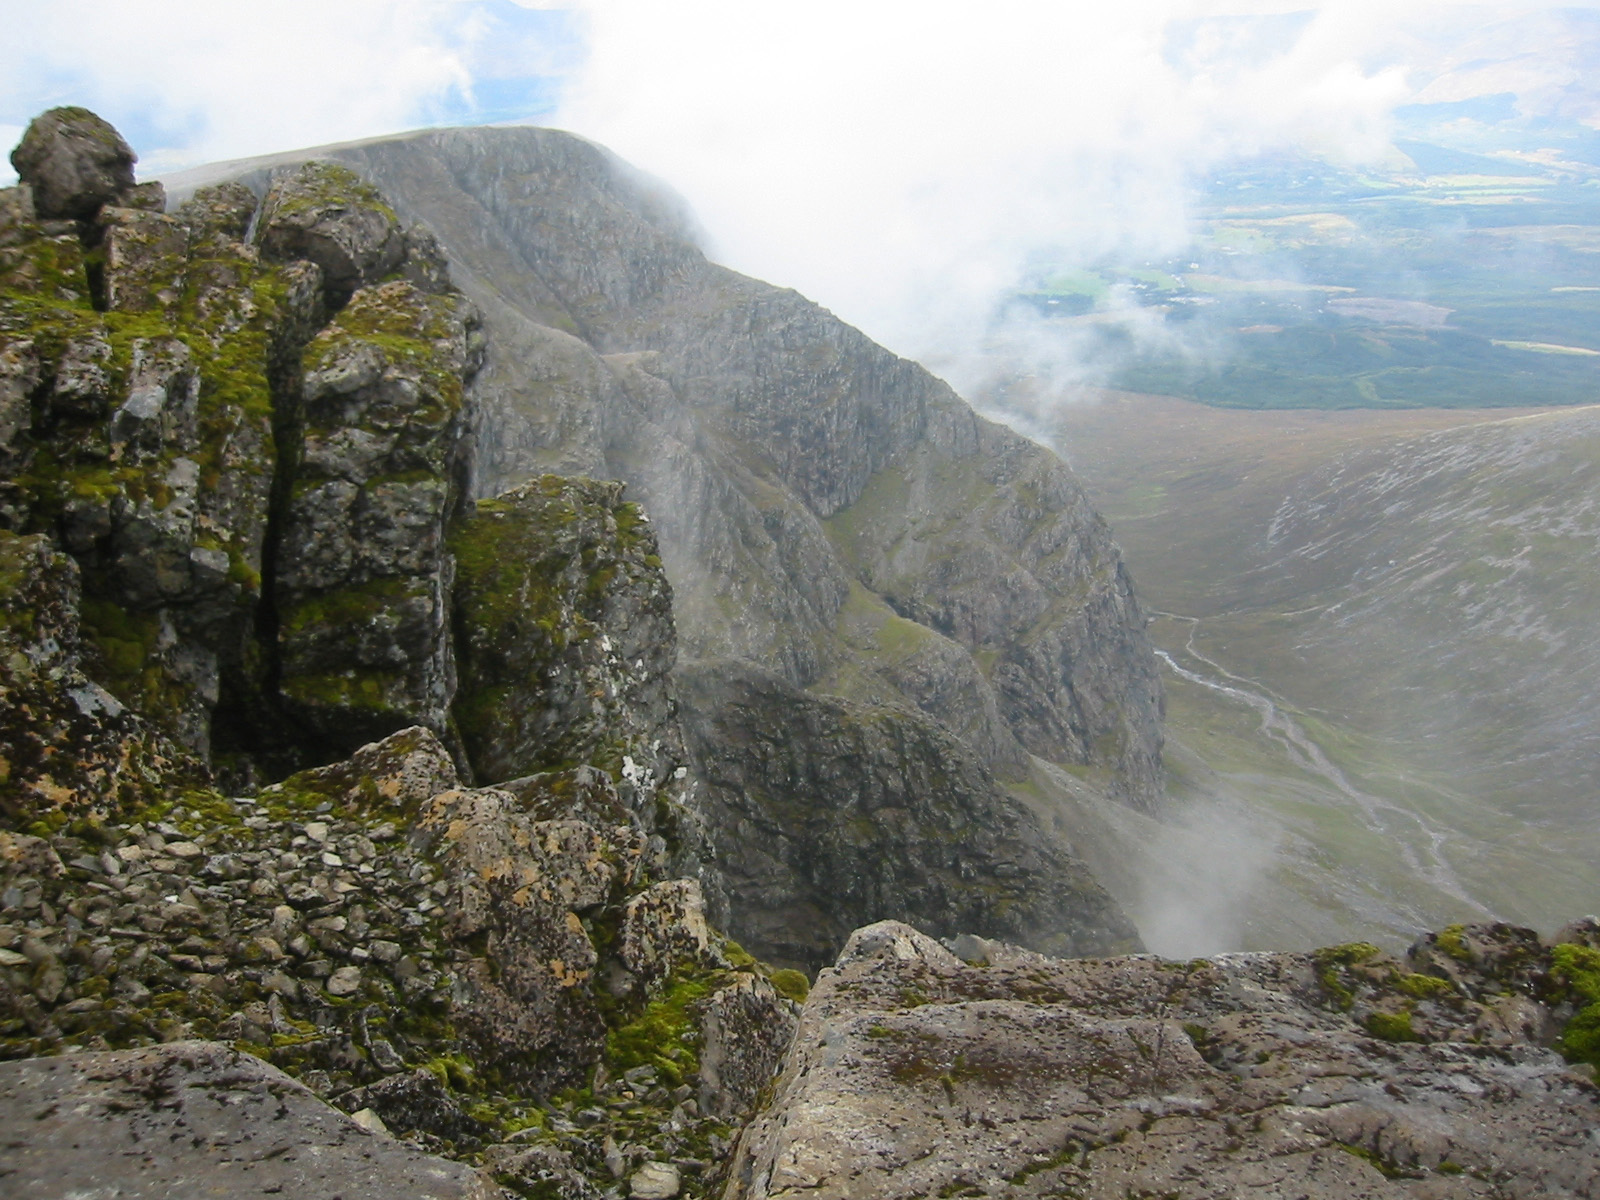 Ben Nevis's northern gullies and ridges